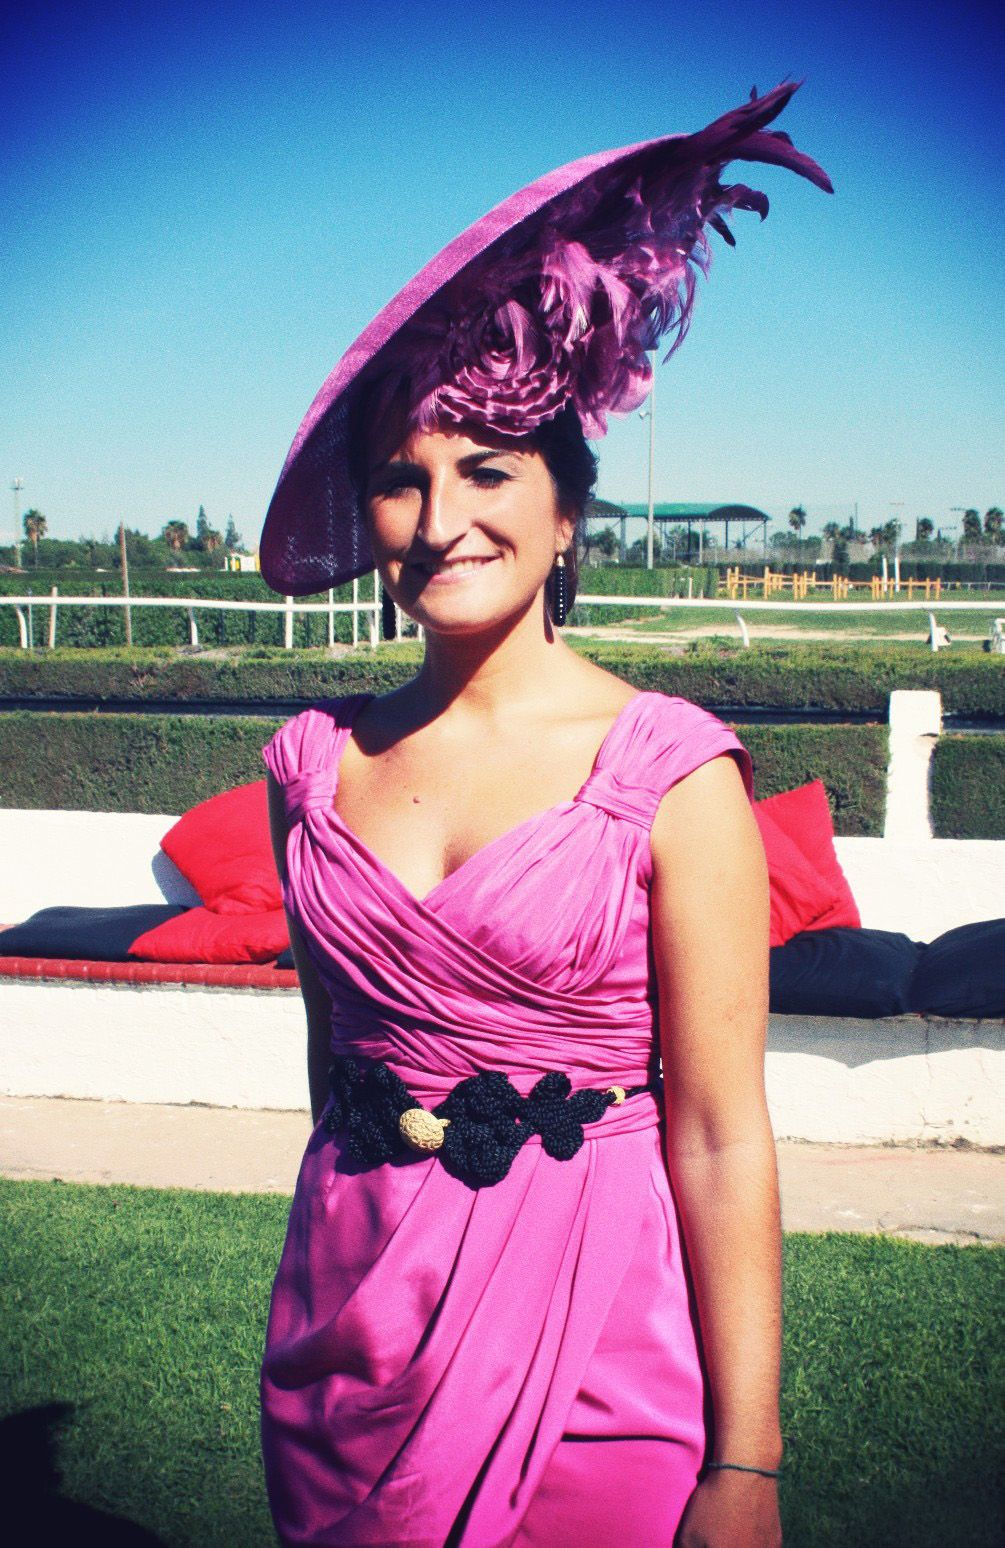 shes ready for the Derby! | Derby | Pinterest | Tocado, Perfecta y ...